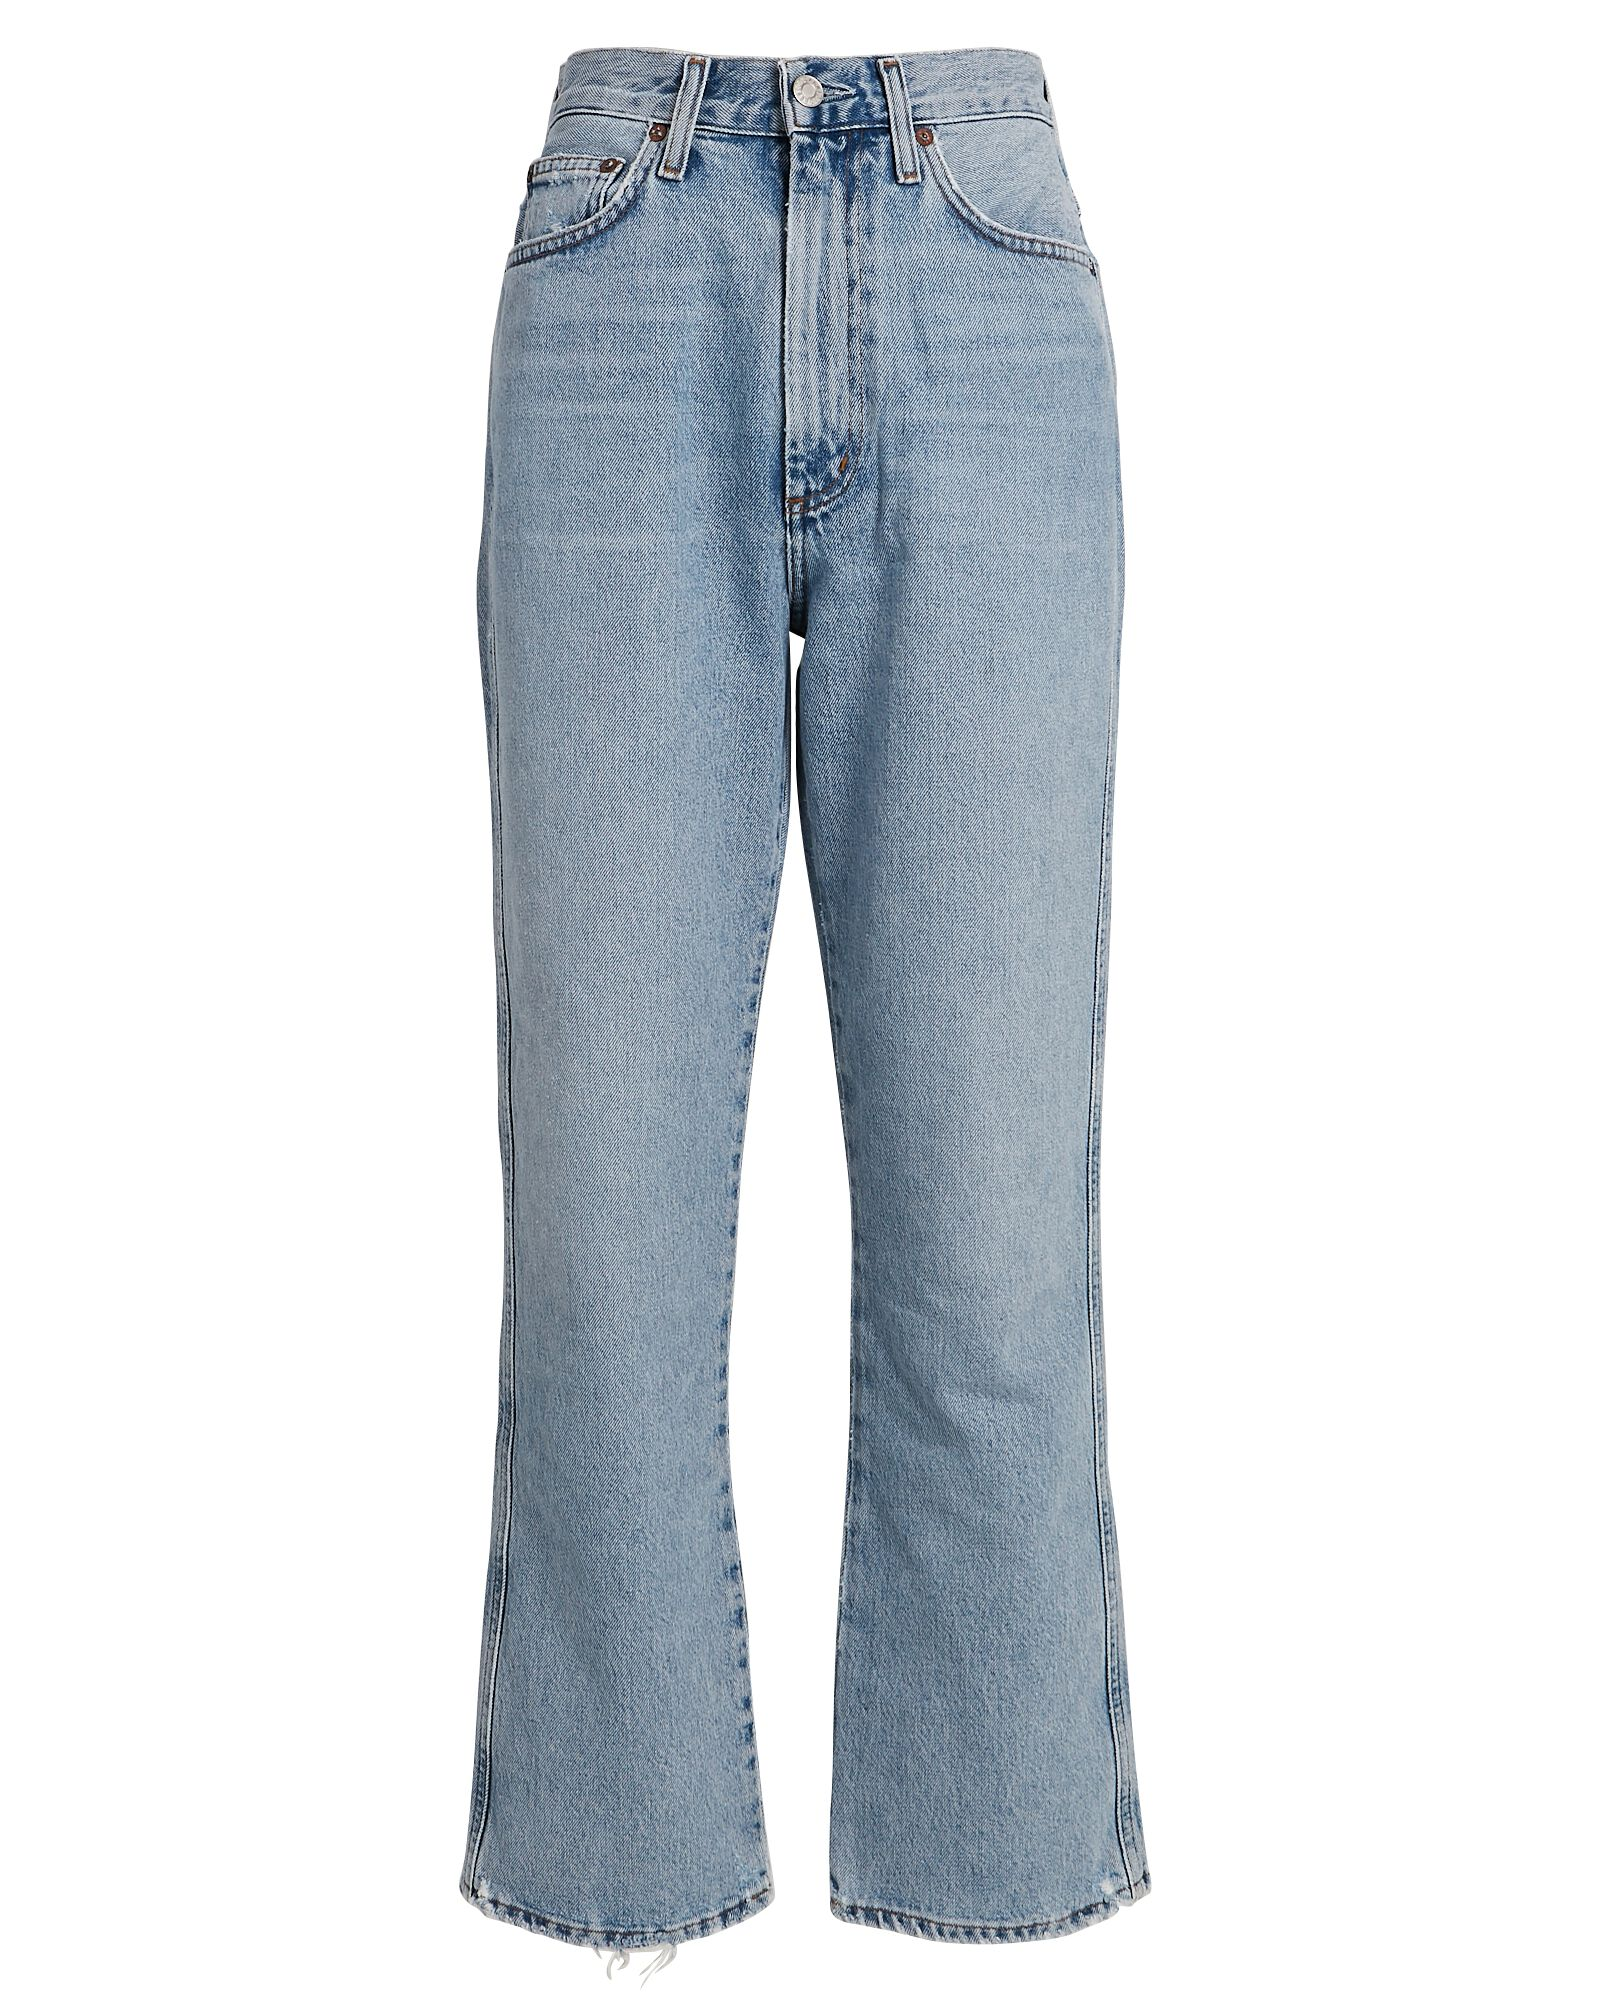 Pinch Waist High-Rise Kick Jeans, DENIM-LT, hi-res